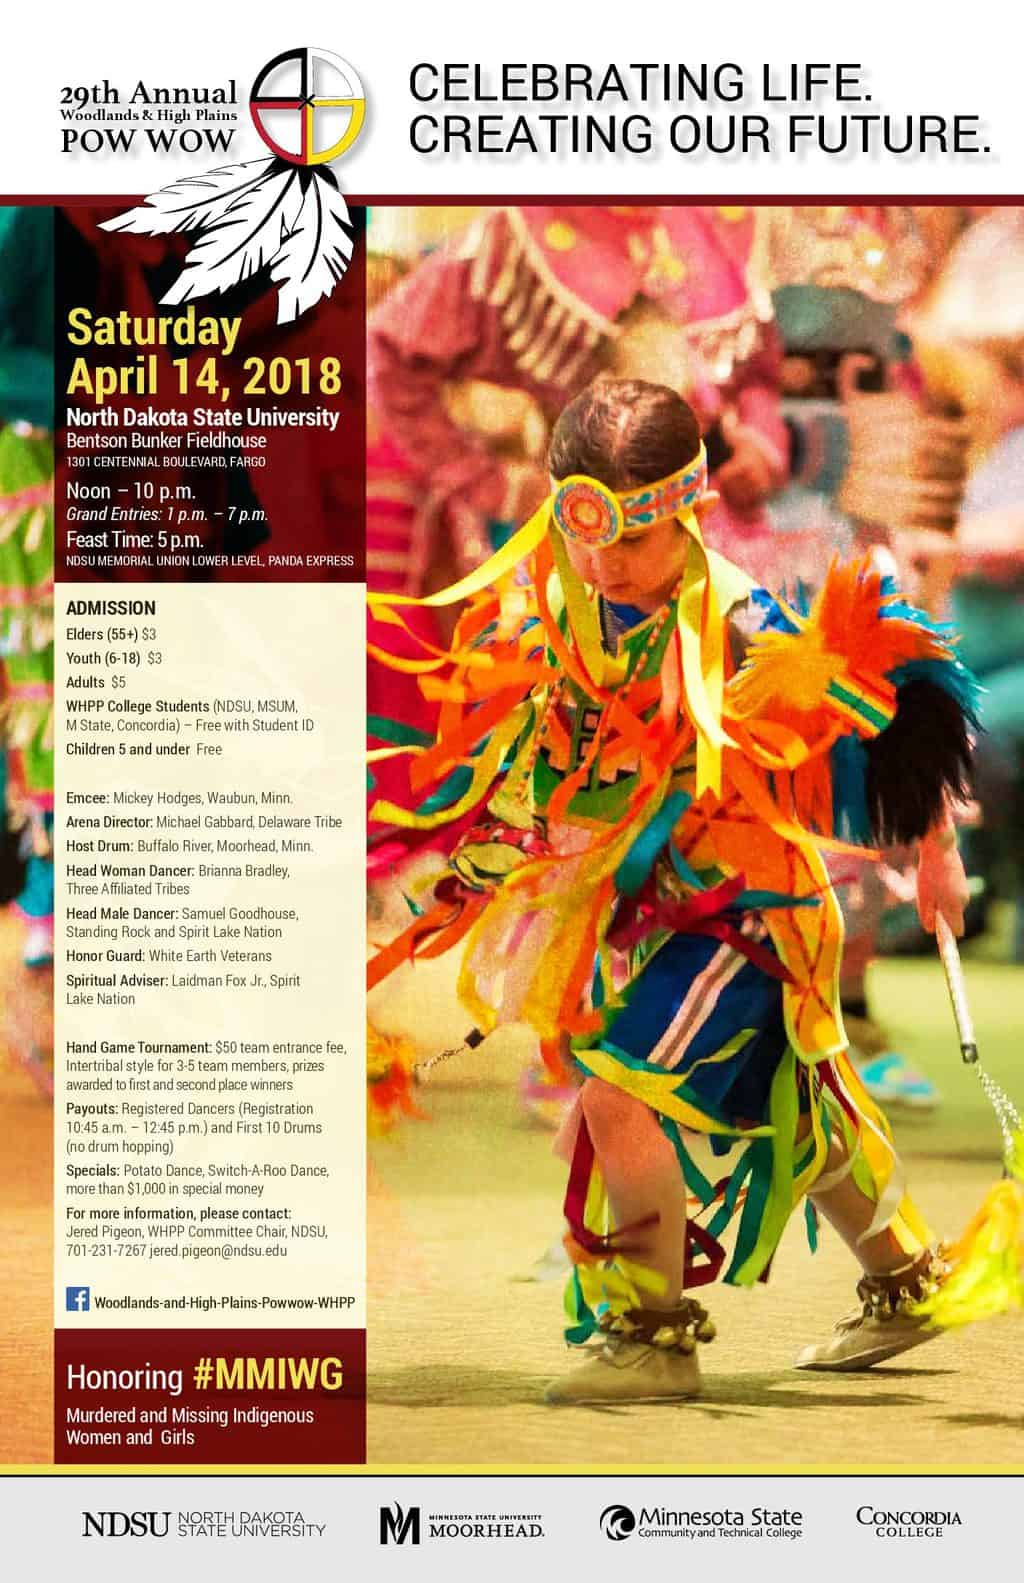 29th Annual Woodlands & High Plains Traditional Powwow (2018